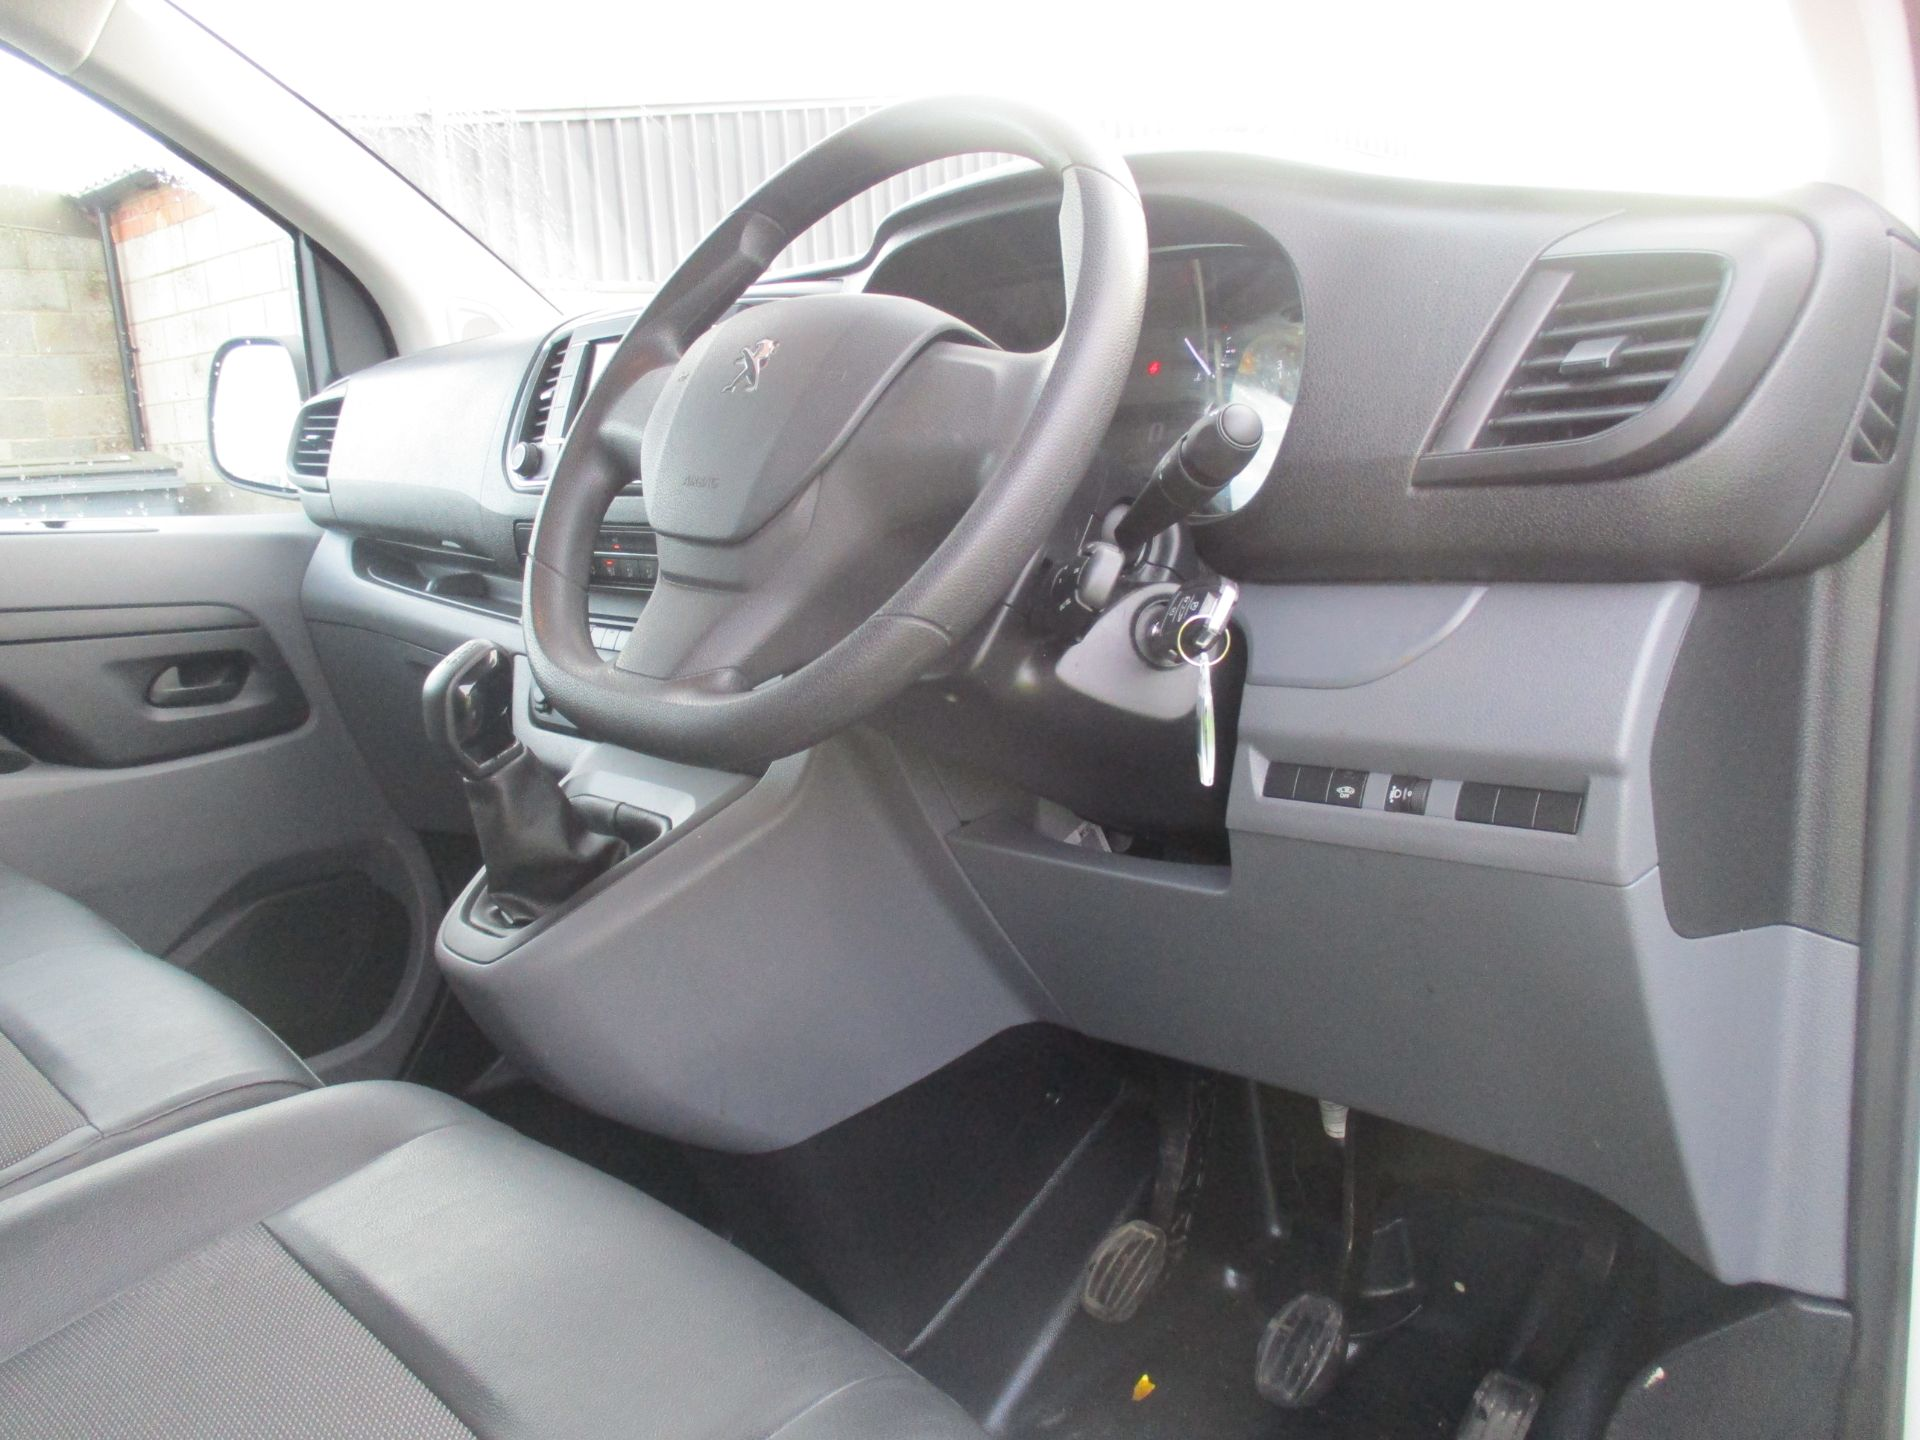 2018 Peugeot Expert STANDARD 1000 1.6 BLUE HDI 95 PROFESSIONAL EURO 6. AIR CON (NU68GXP) Image 14